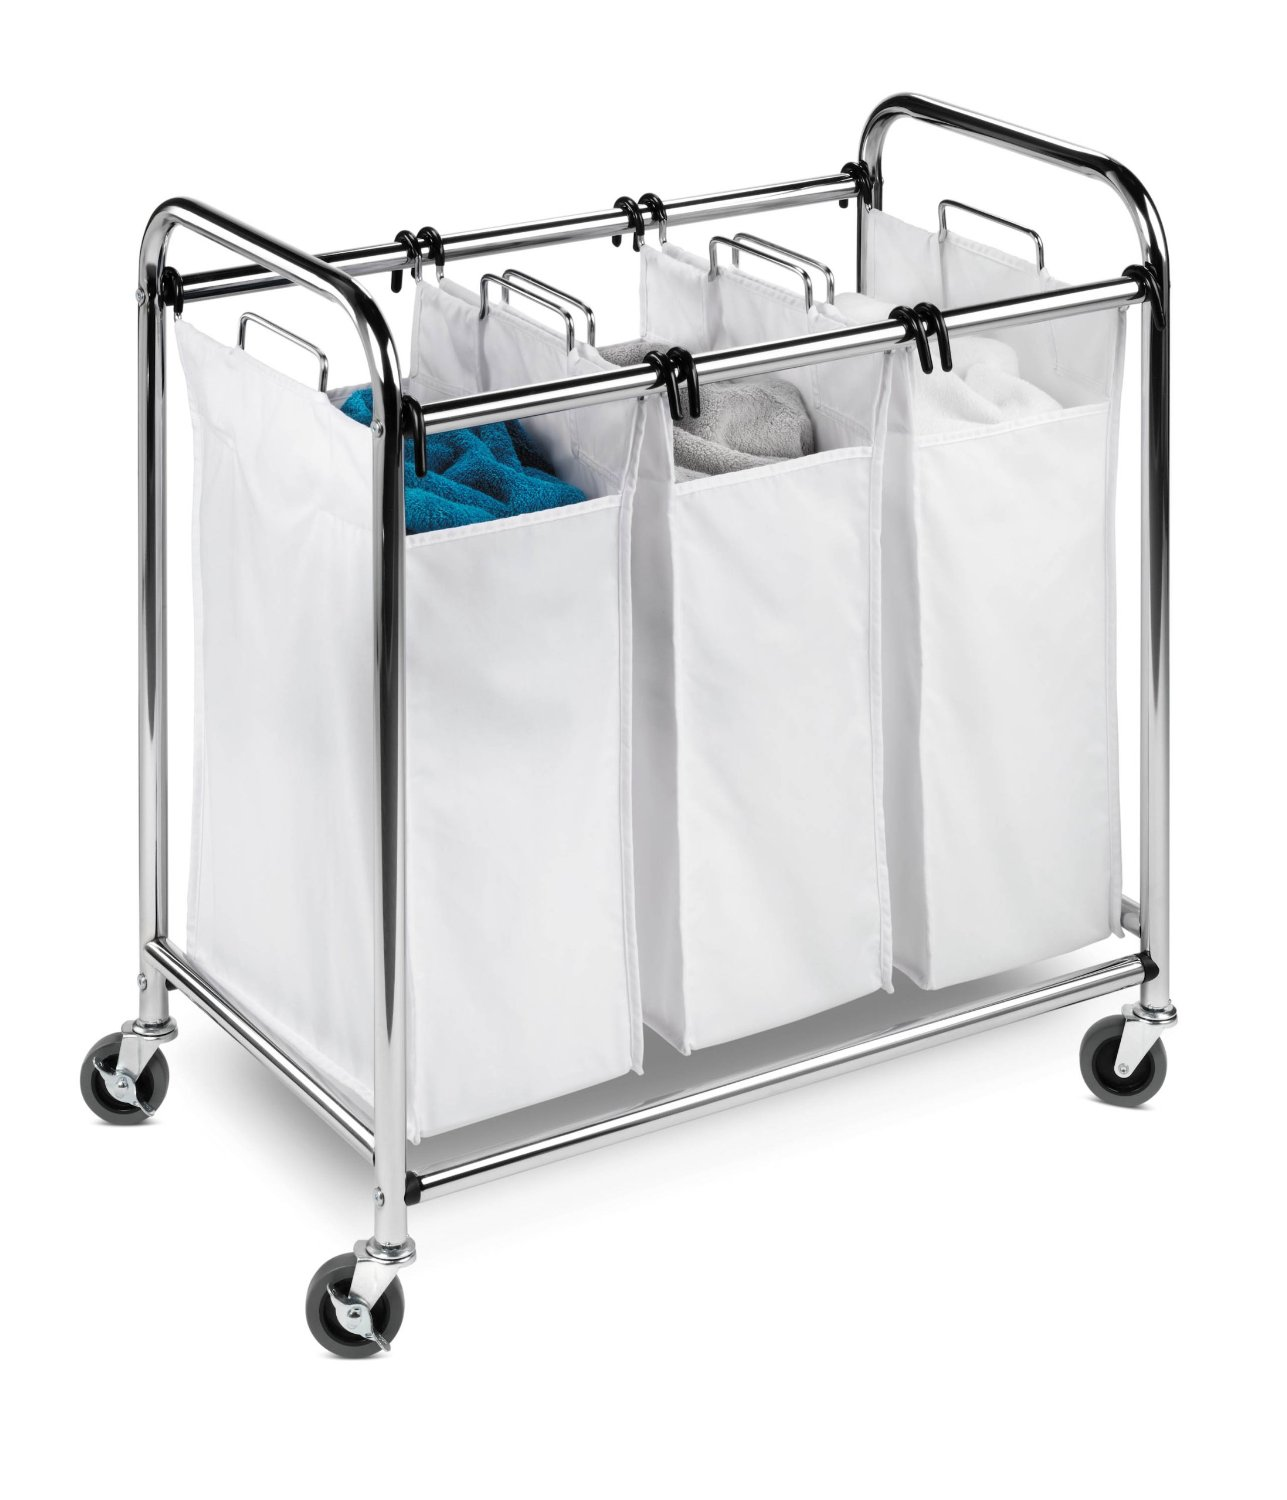 Laundry Bin With Wheels Laundry Baskets With Wheels Homesfeed